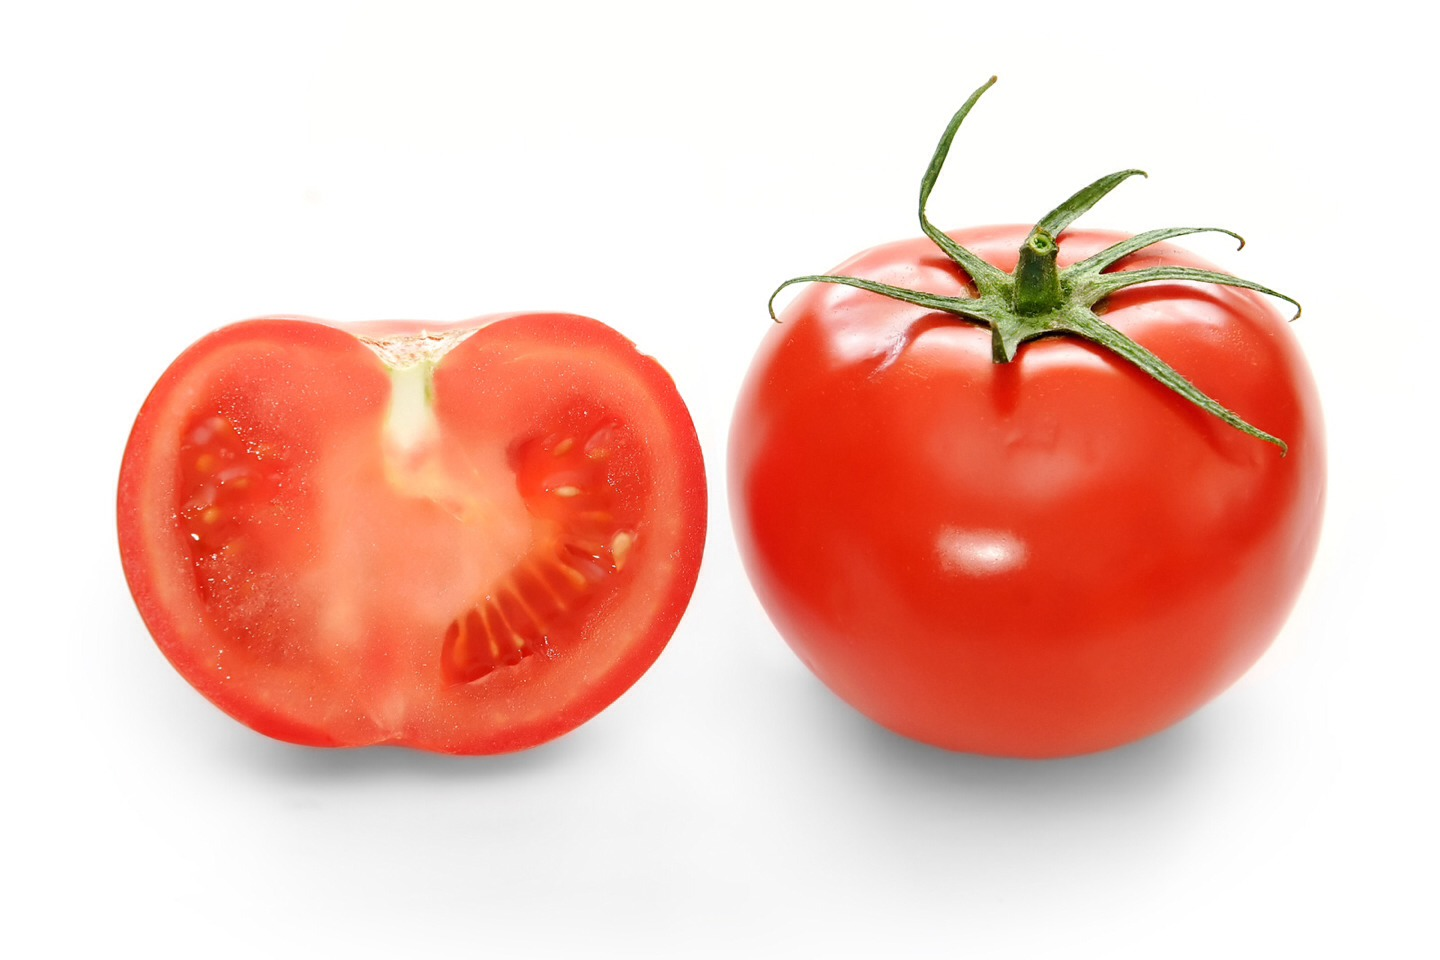 Tomatoes and the pulp have vitamin A,K,C and lycopene found in acne medications. The acidity dry up acne.